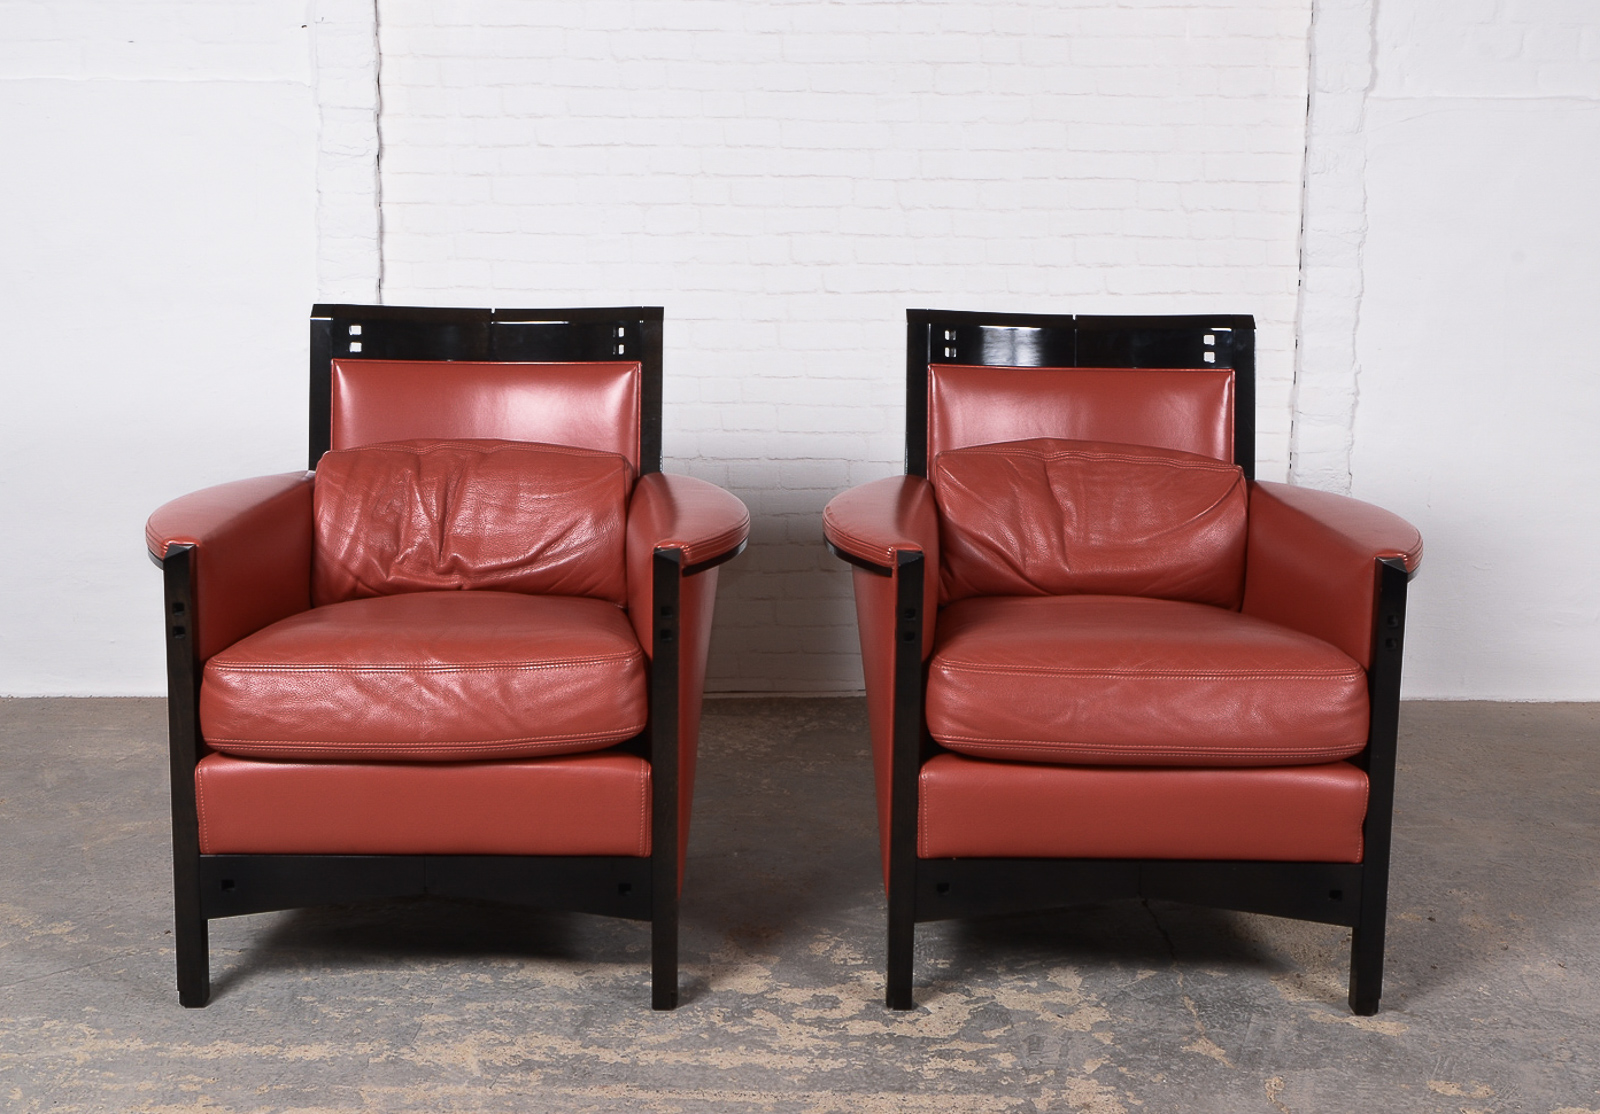 Pair Of Cherry Red Leather Lounge Chairs By Umberto Asnago For Giorgetti